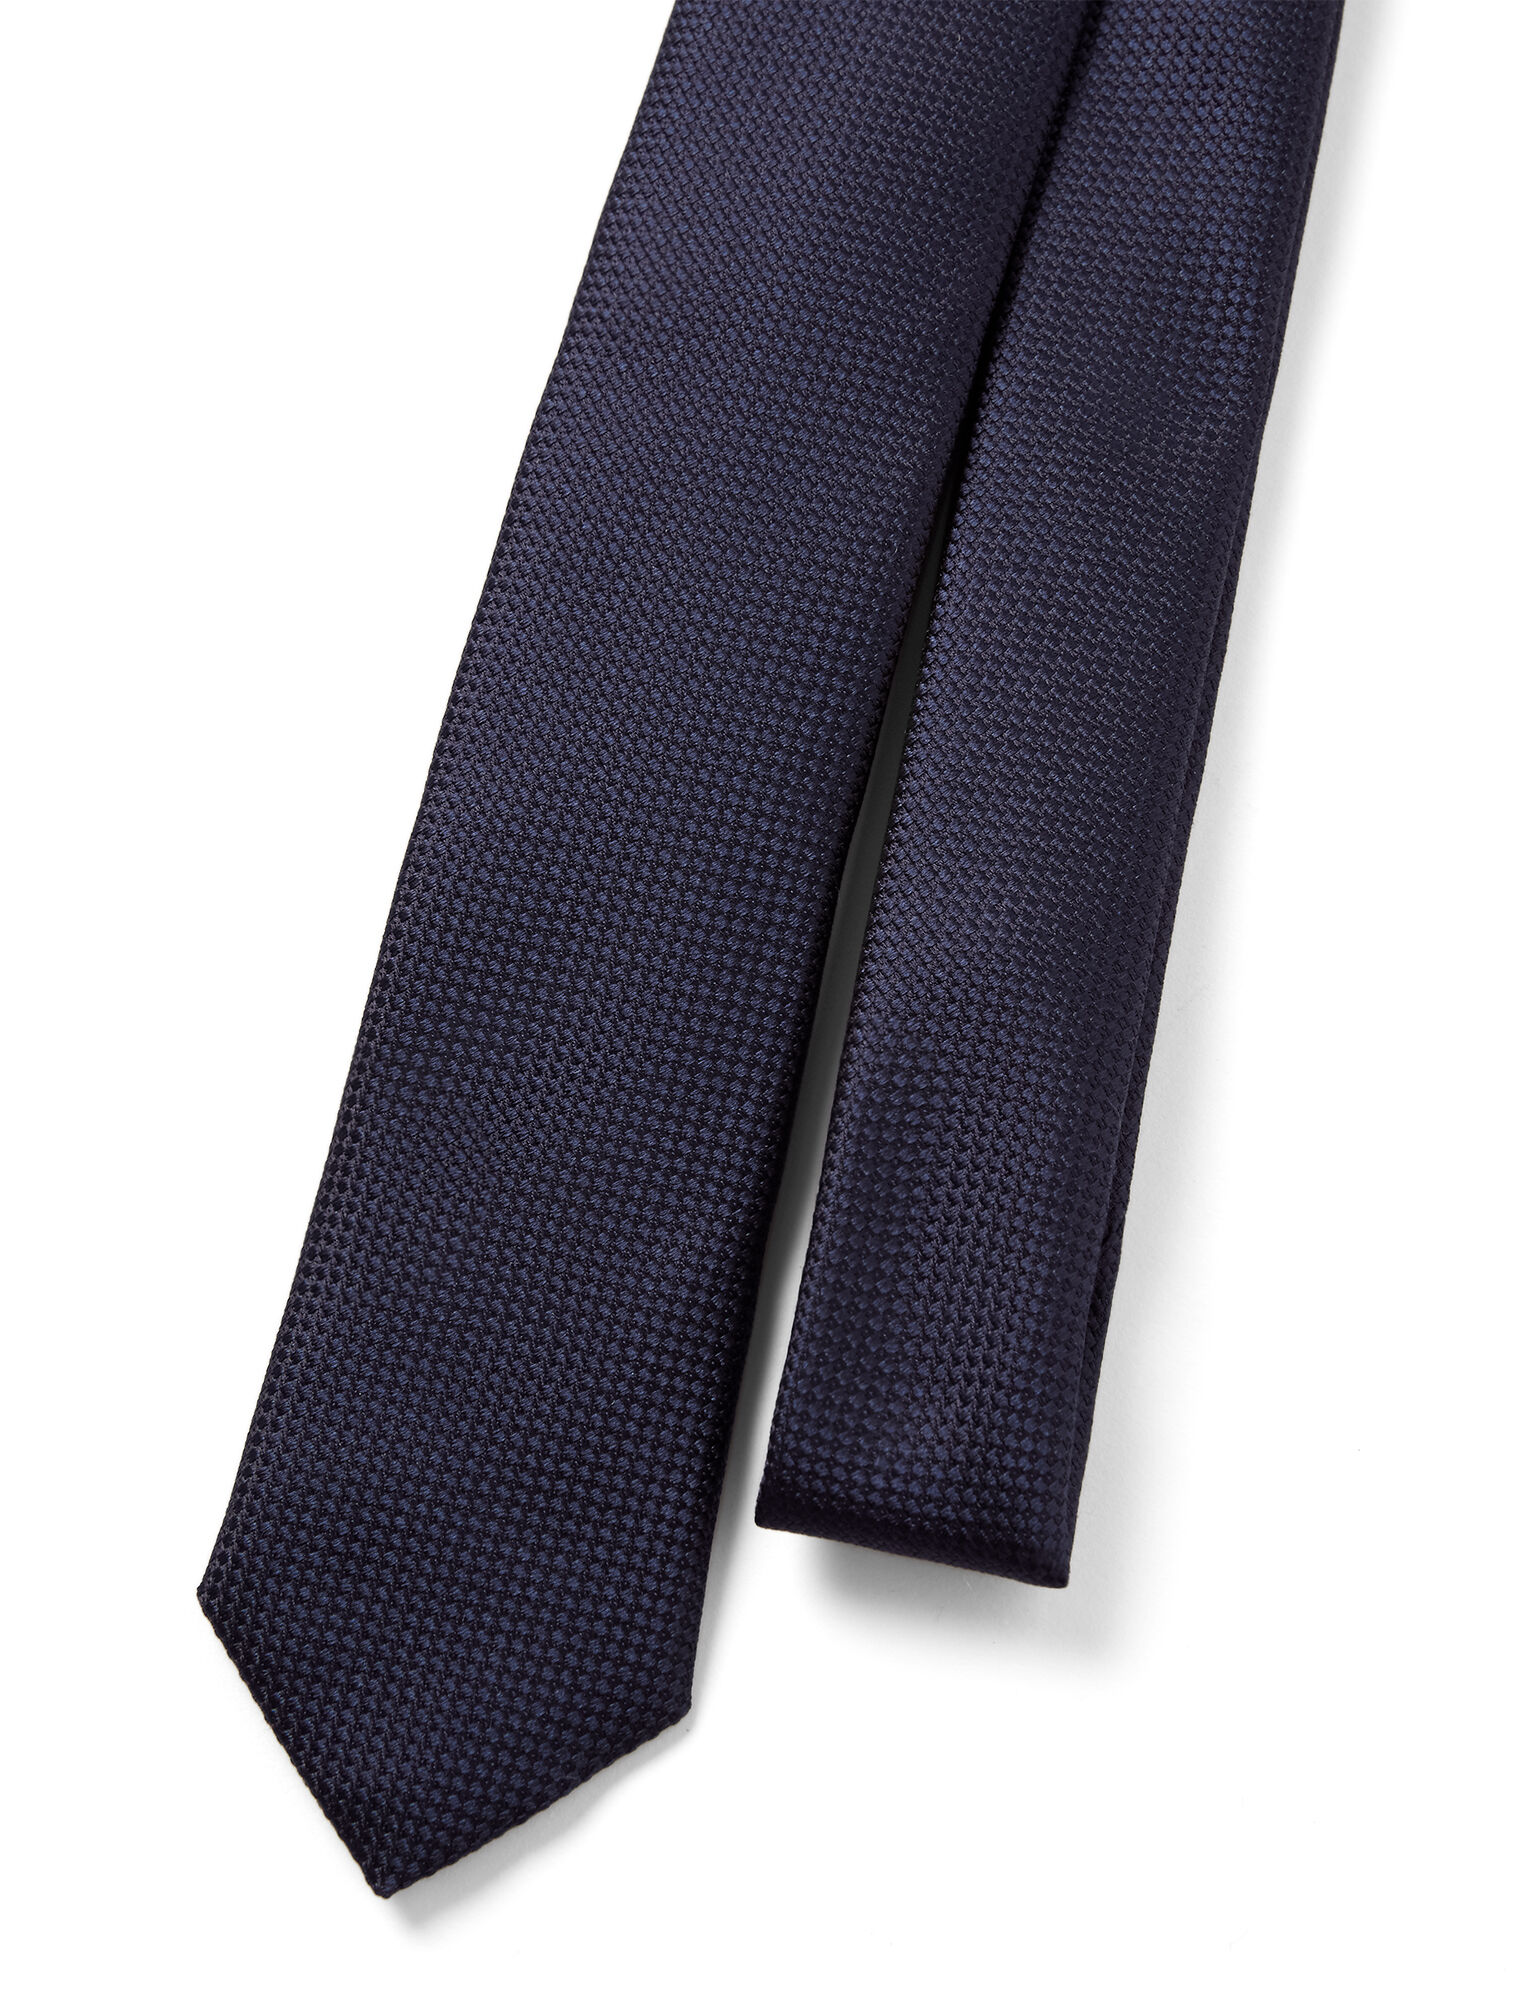 Joseph, Ribbed Silk Tie, in NAVY